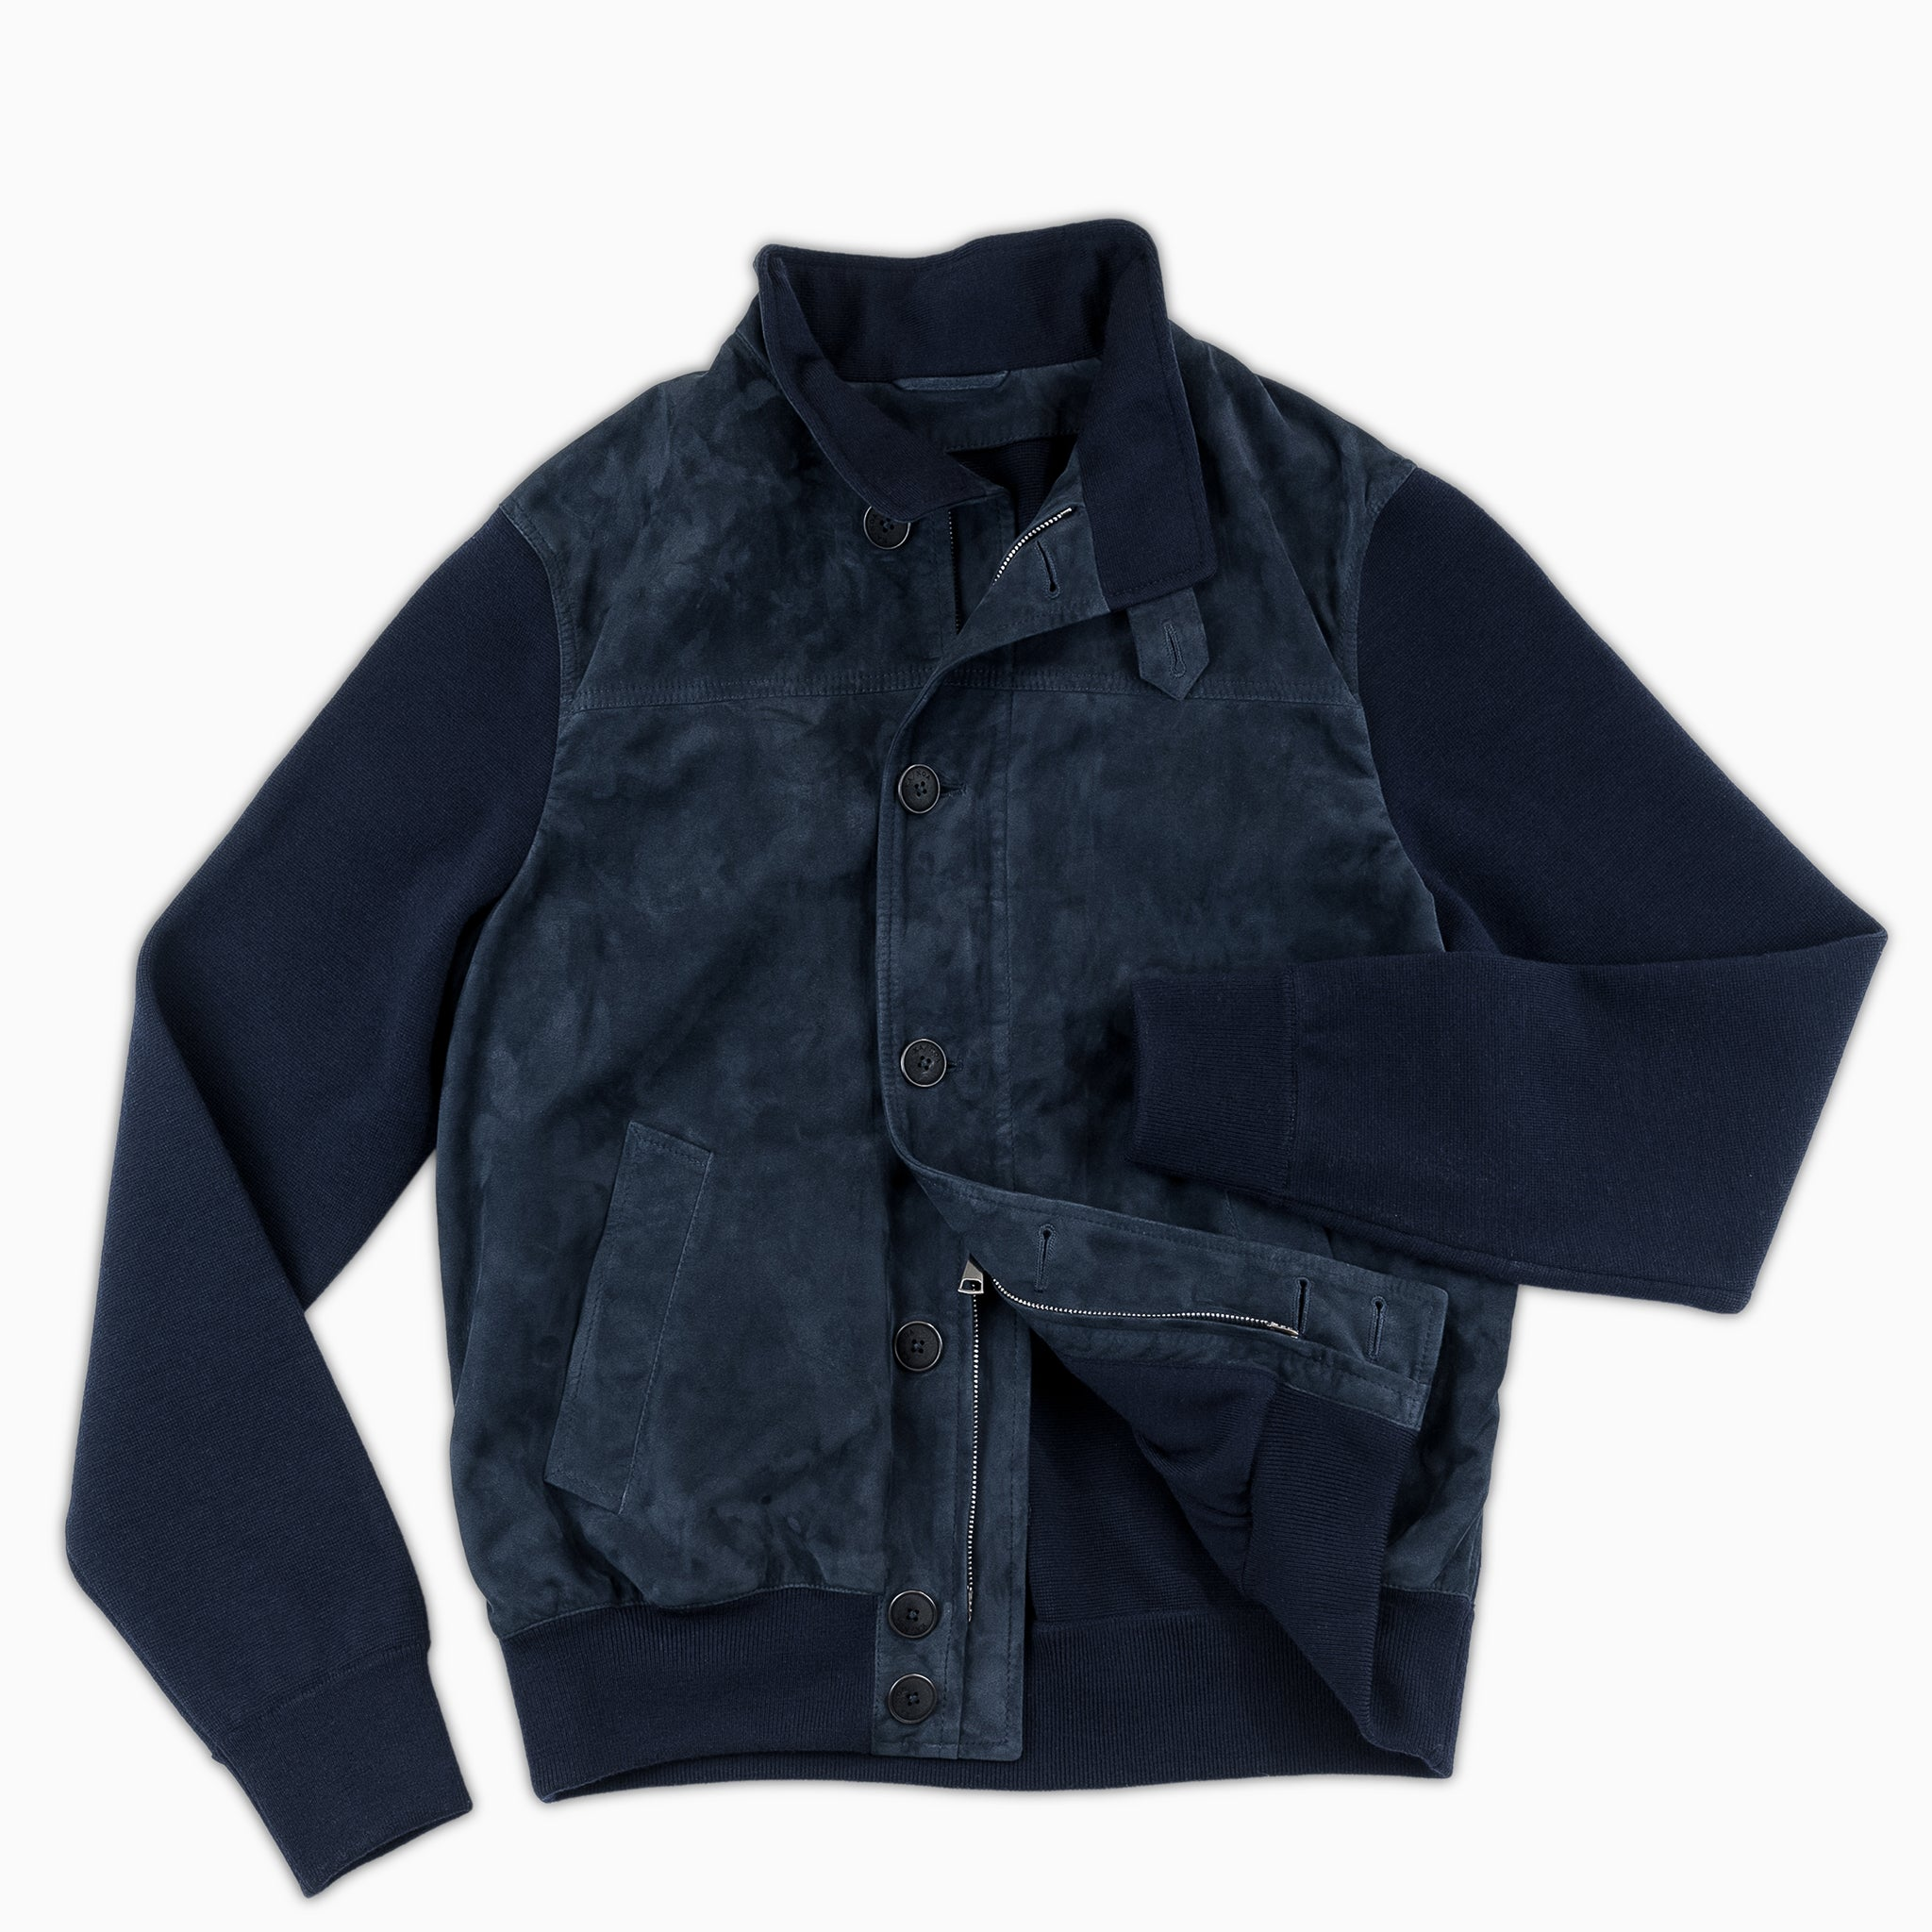 Honoré Leather and Woollen Bomber (dark blue)